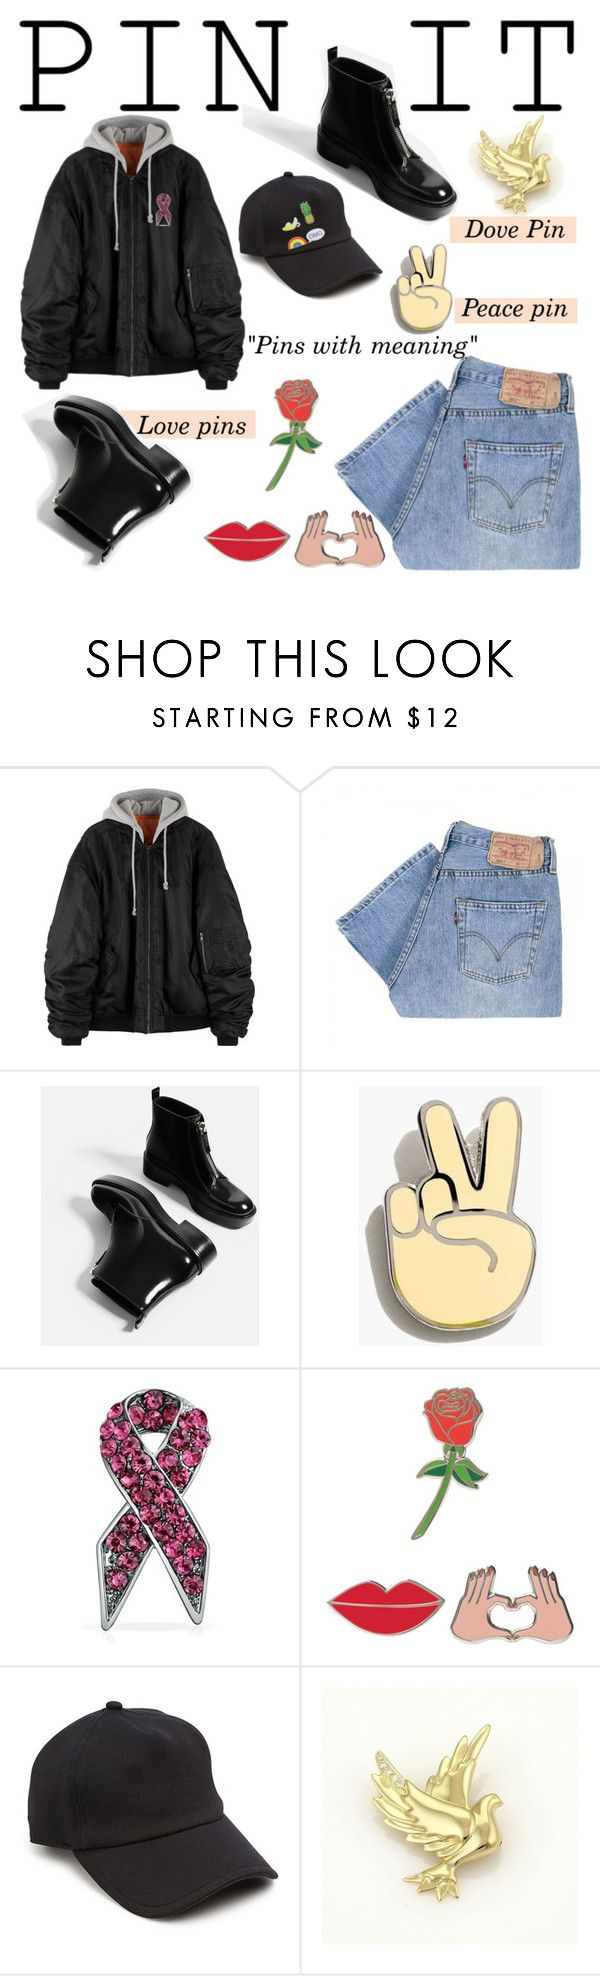 """""""Pins with meaning"""" by nora-jakucs ❤ liked on Polyvore featuring Levi's, Madewell, Bling Jewelry, iDecoz, rag & bone, Tiffany & Co. and Eye Candy"""